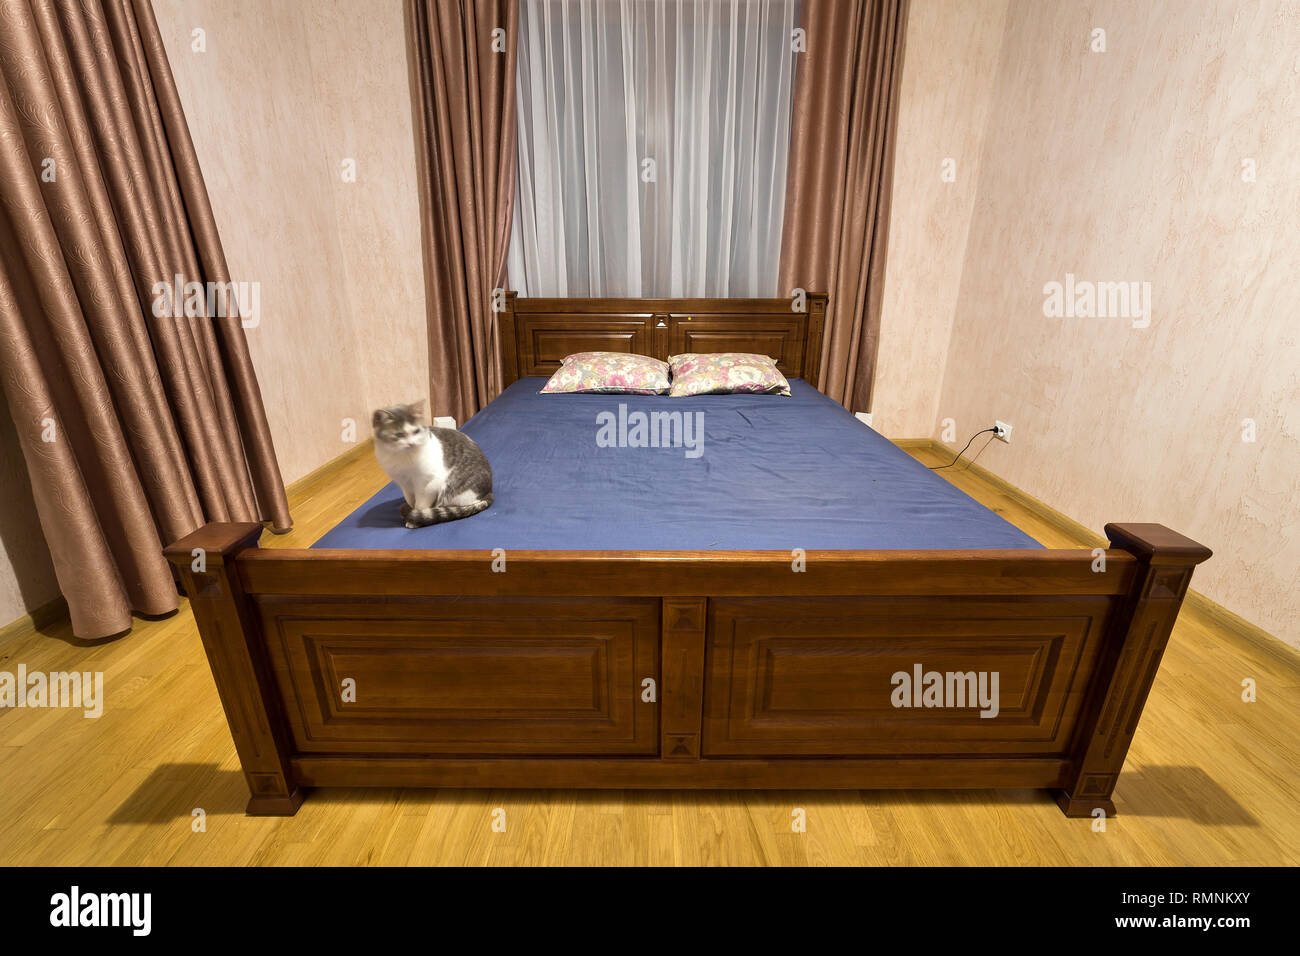 New Spacious Bedroom Interior Design In White And Brown Tone Wooden Floor And Comfortable Double Bed Nice Curtains On Wide Windows Stock Photo Alamy